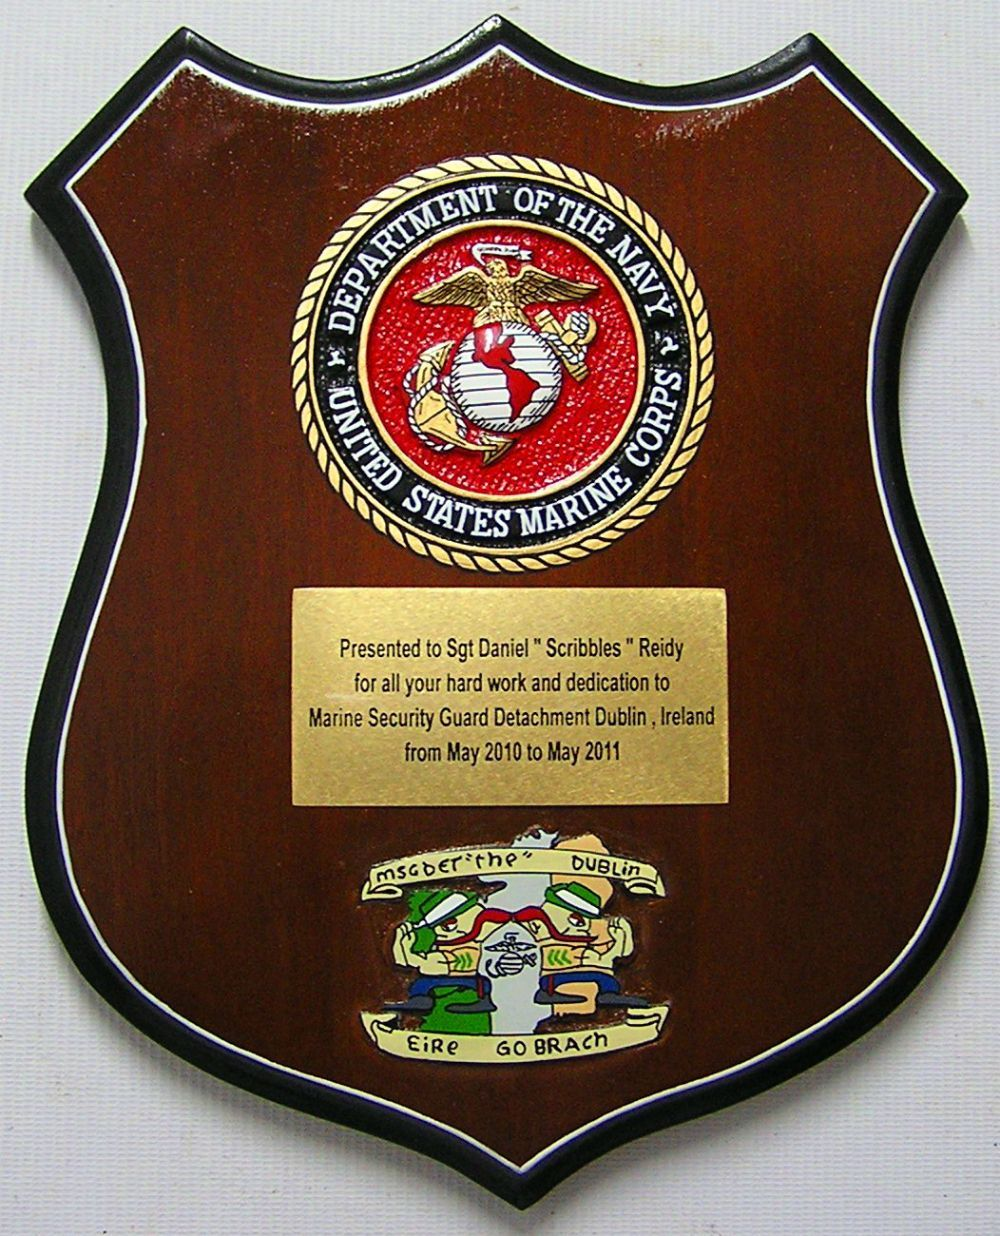 Going Away Quotes For Military Plaques: Military Retirement Plaques